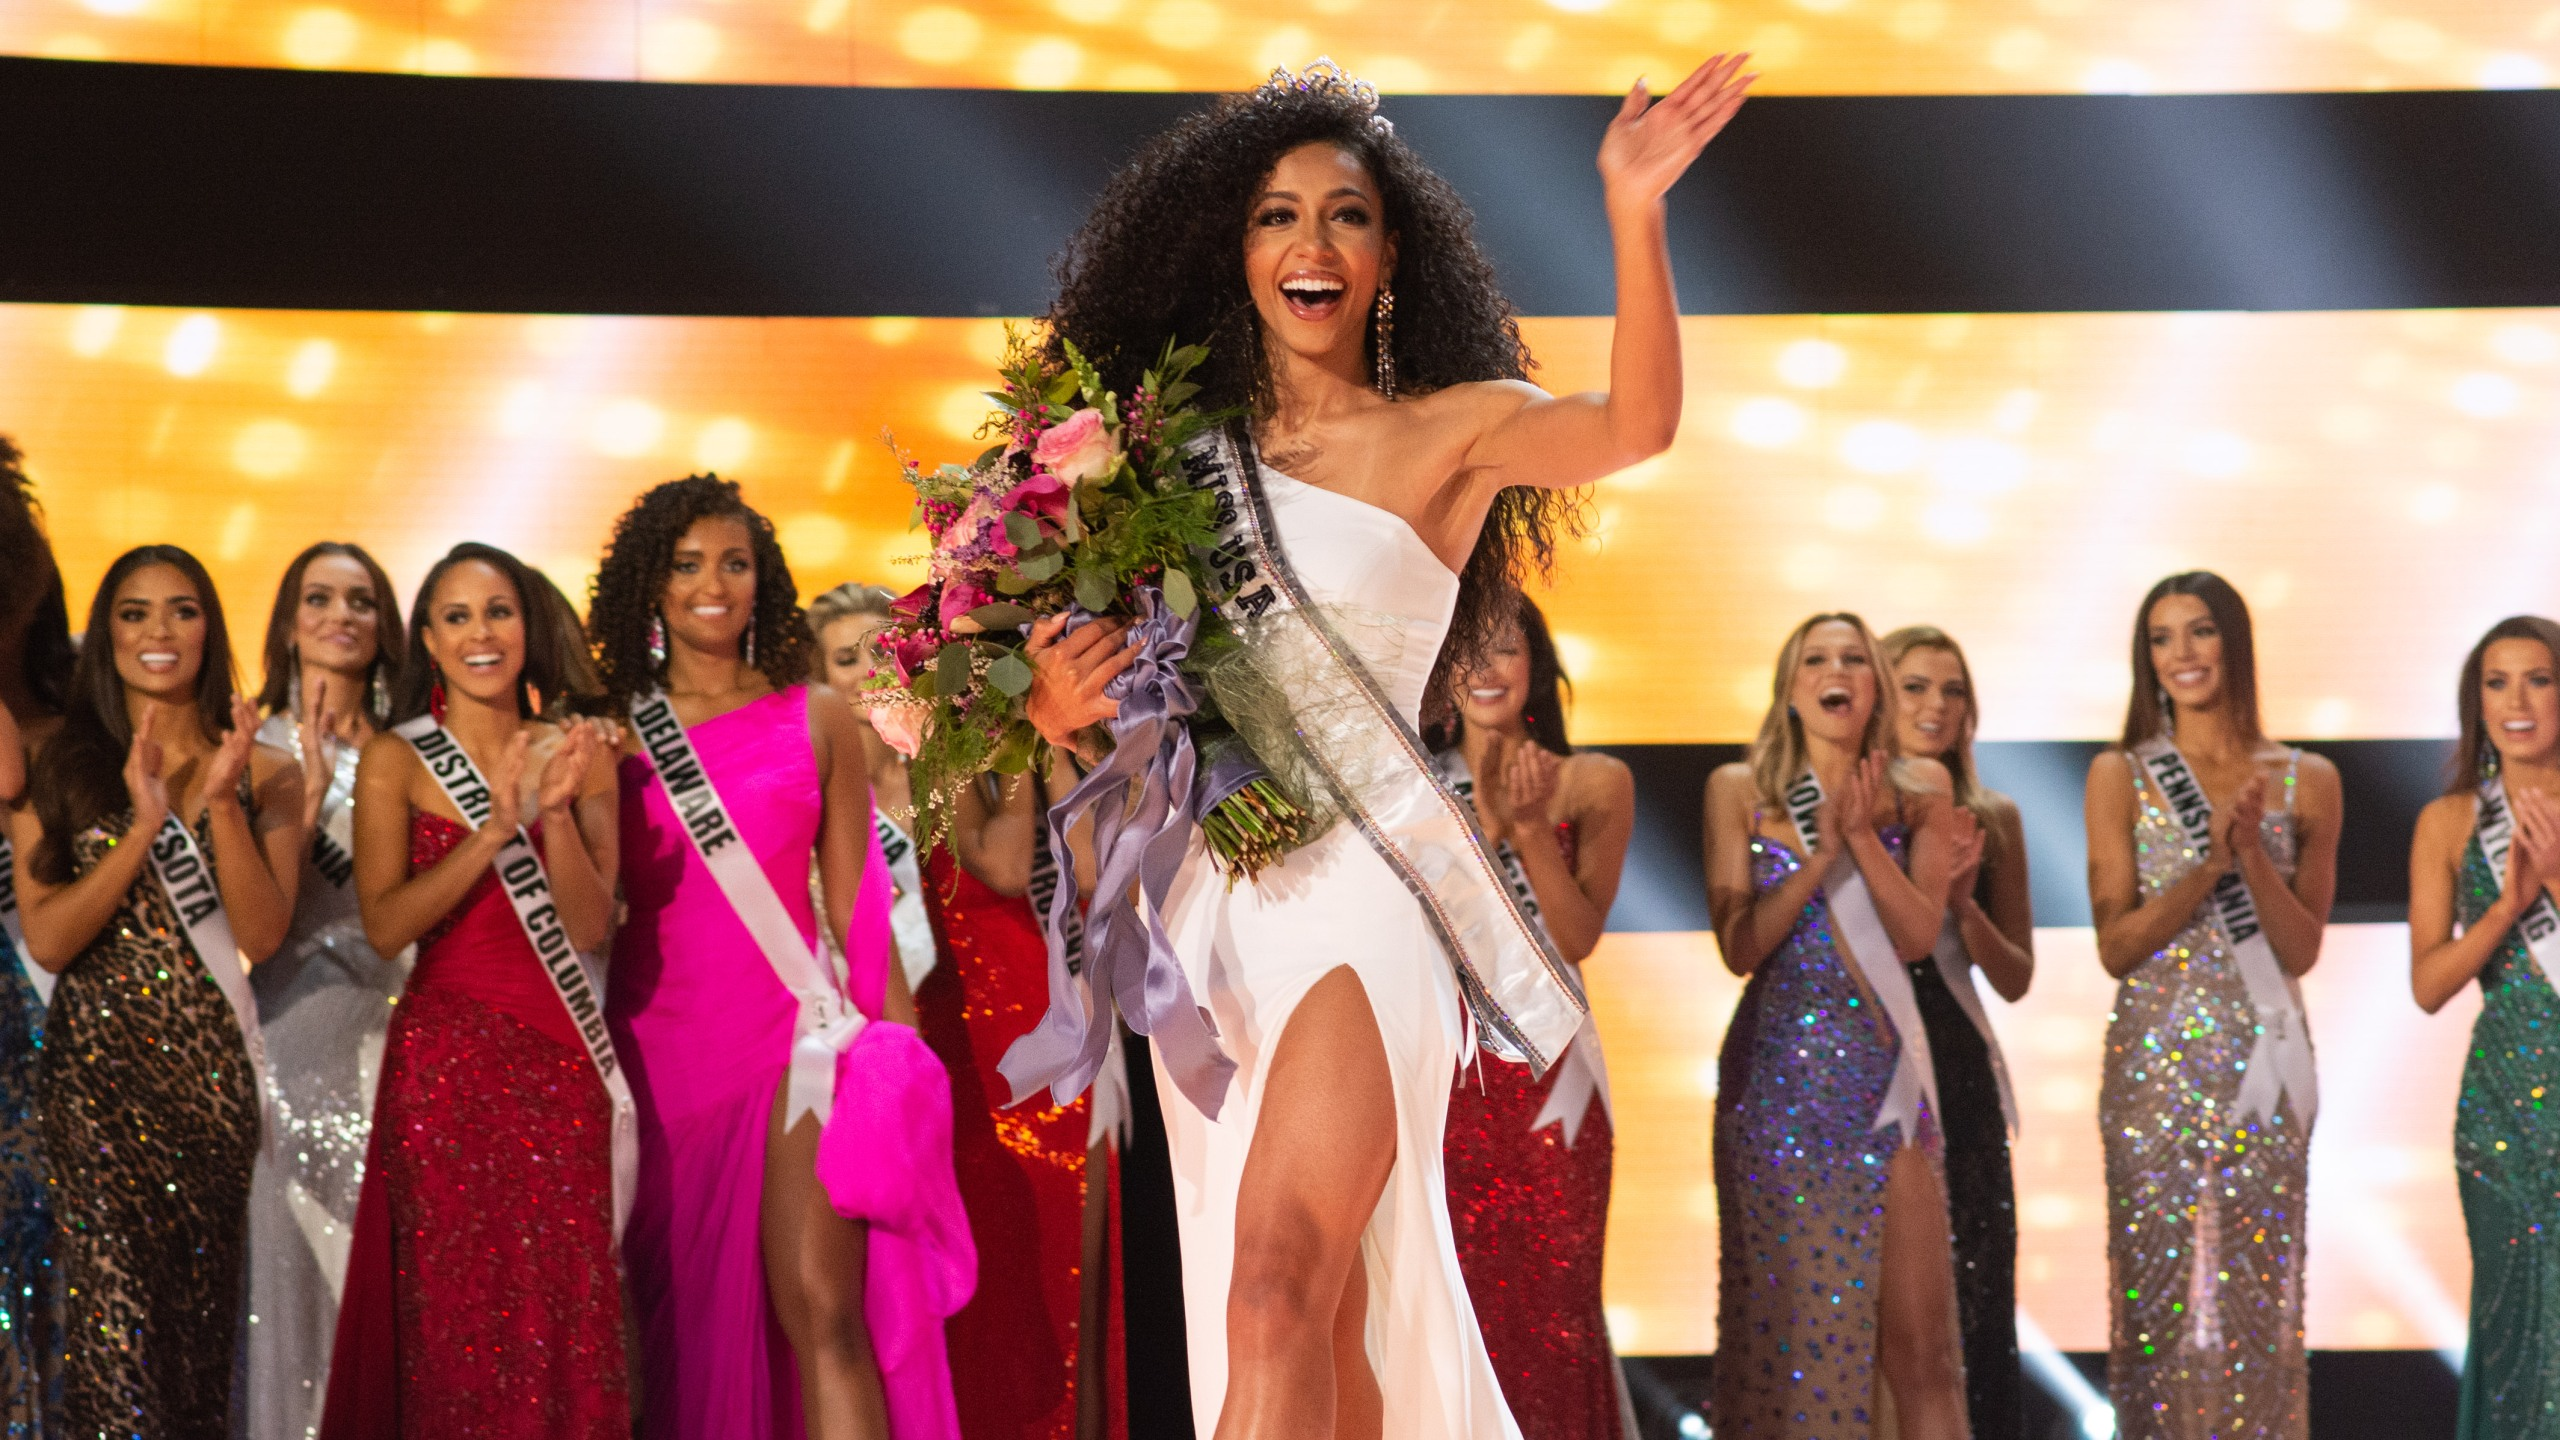 Miss North Carolina Cheslie Kryst is crowned Miss USA at the Grand Sierra Resort in Reno, Nevada, on May 2, 2019. (Credit: Frank L. Szelwach / The Miss Universe Organization)